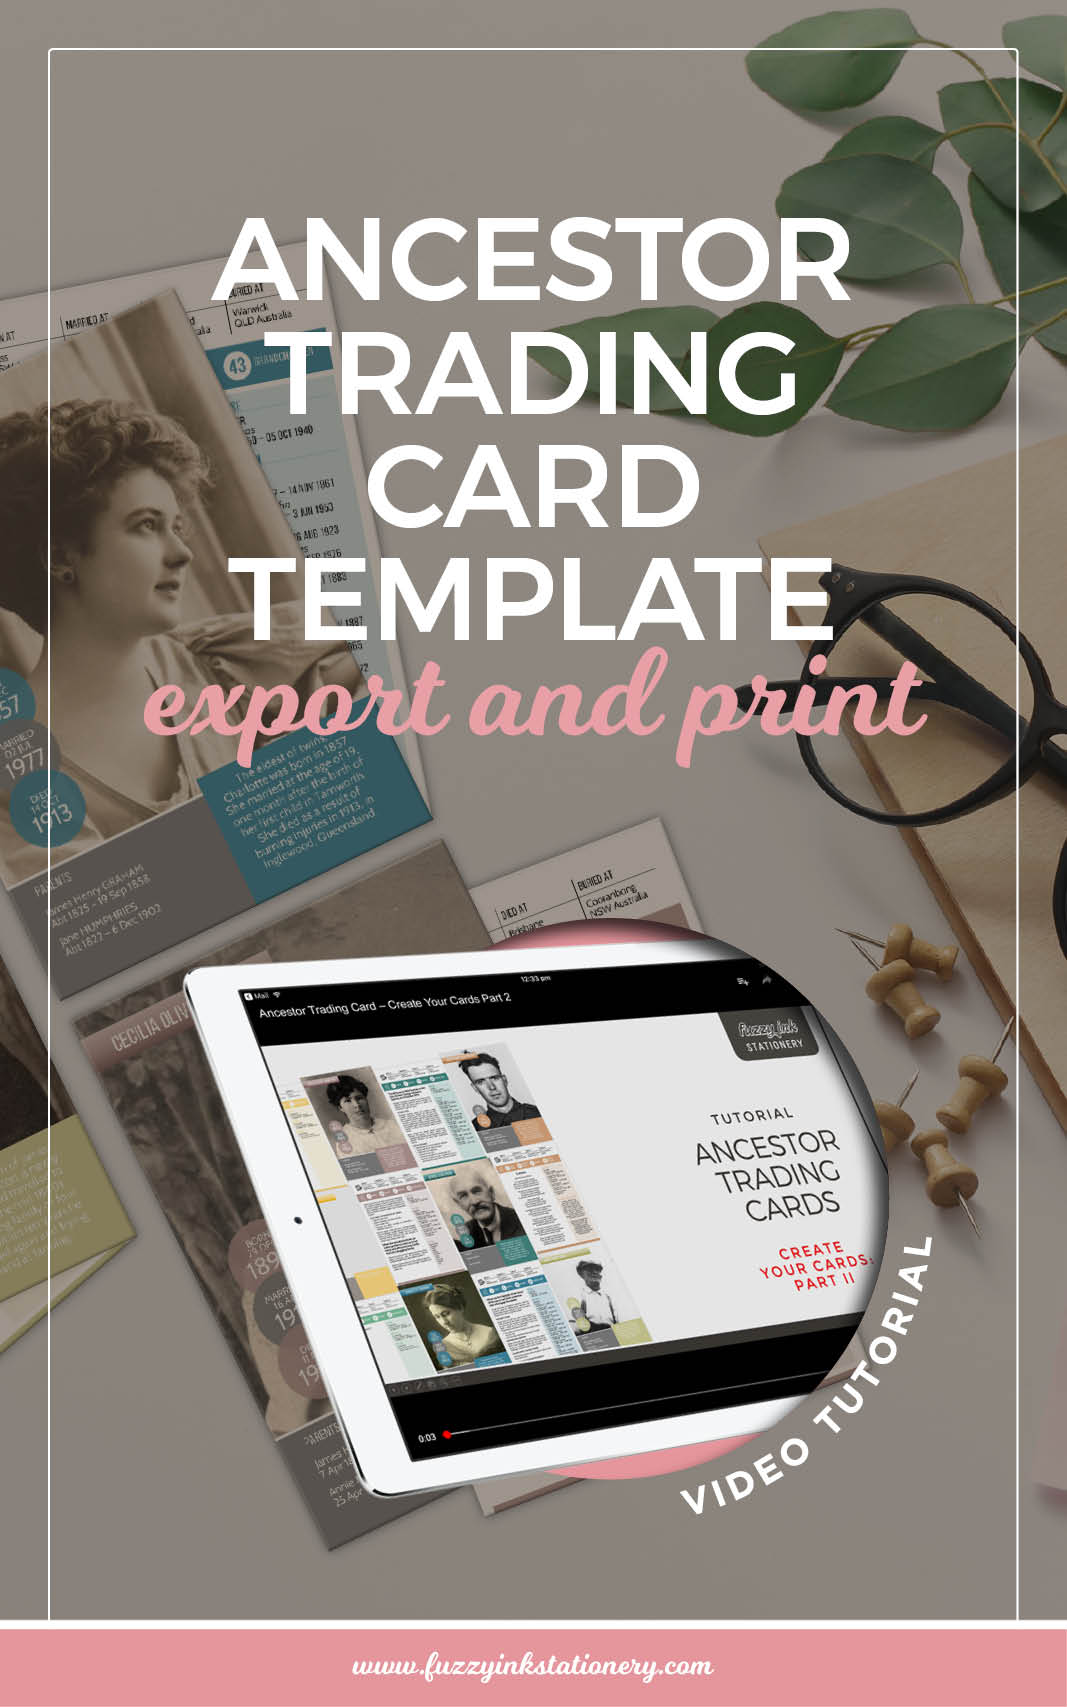 Fuzzy Ink Stationery Ancestor Trading Card Template Export and Print Video Tutorial